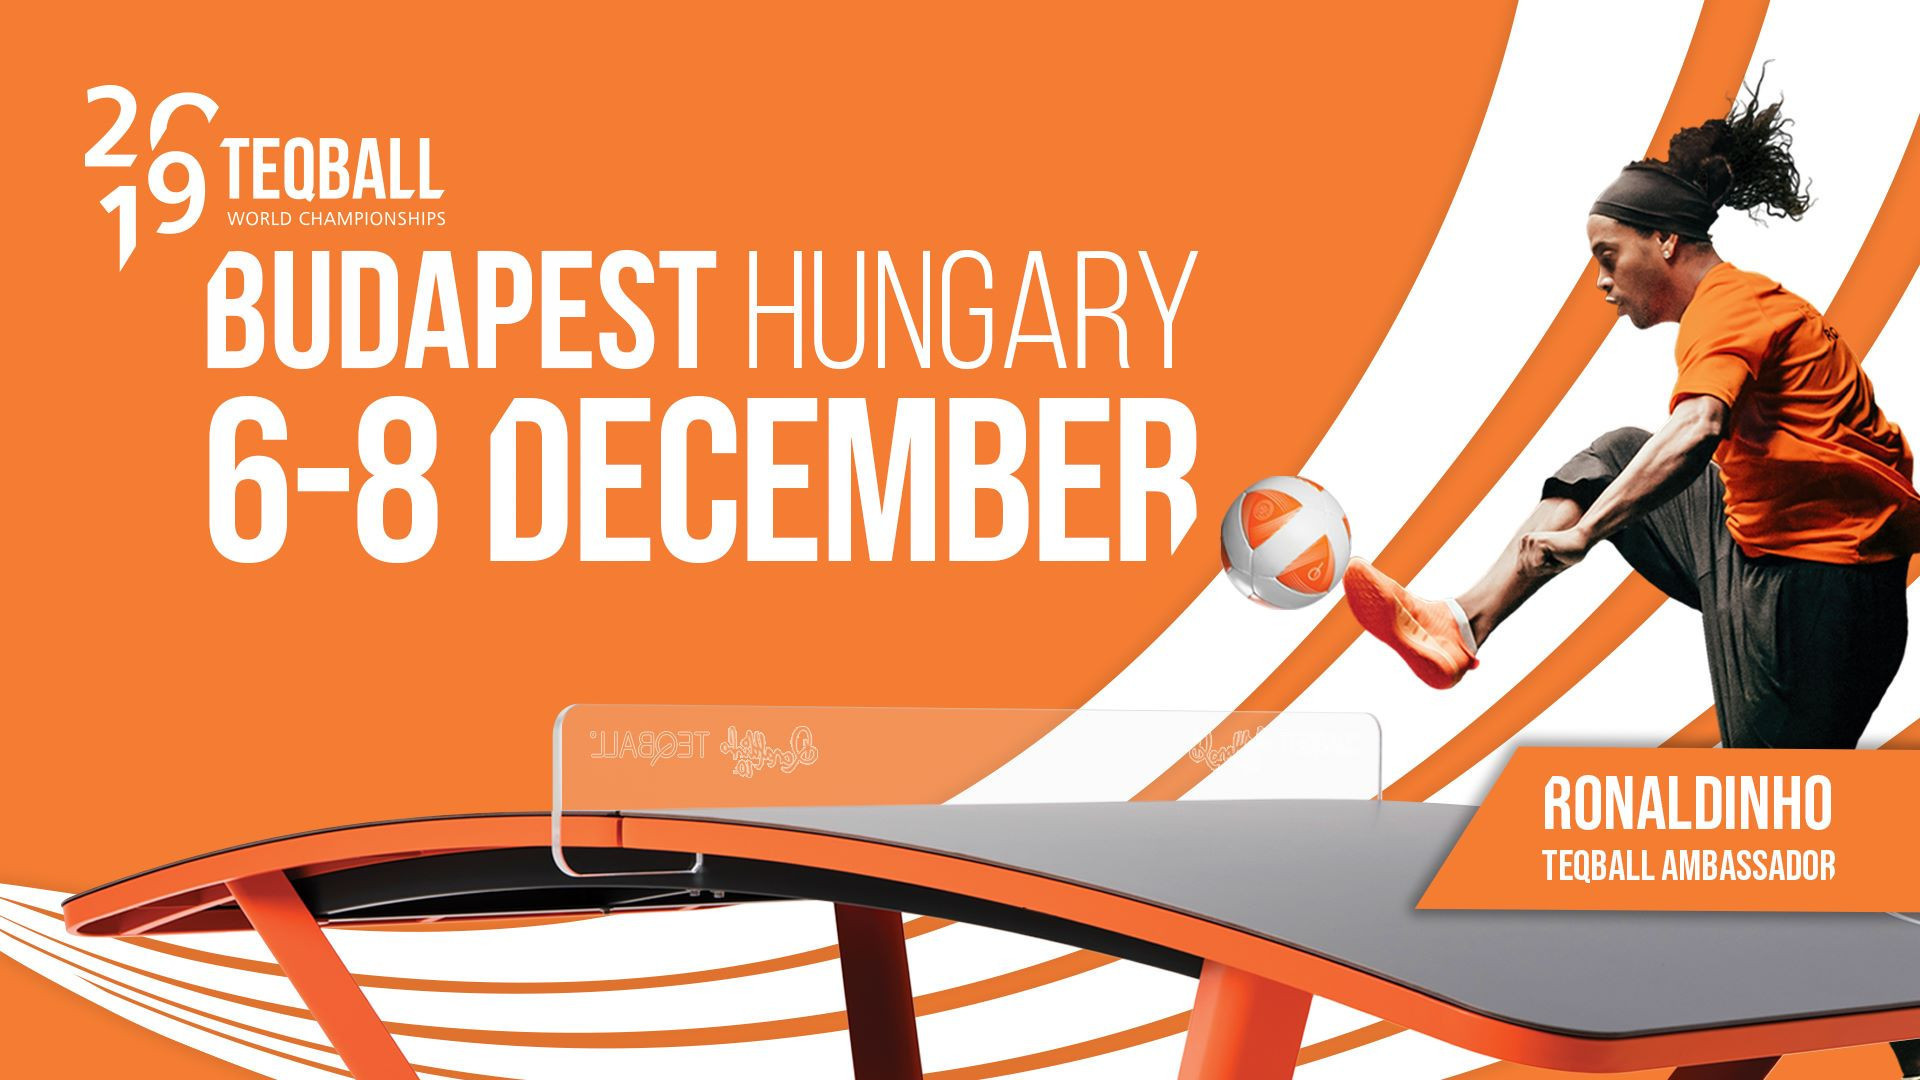 Budapest to host first Teqball World Championships next month